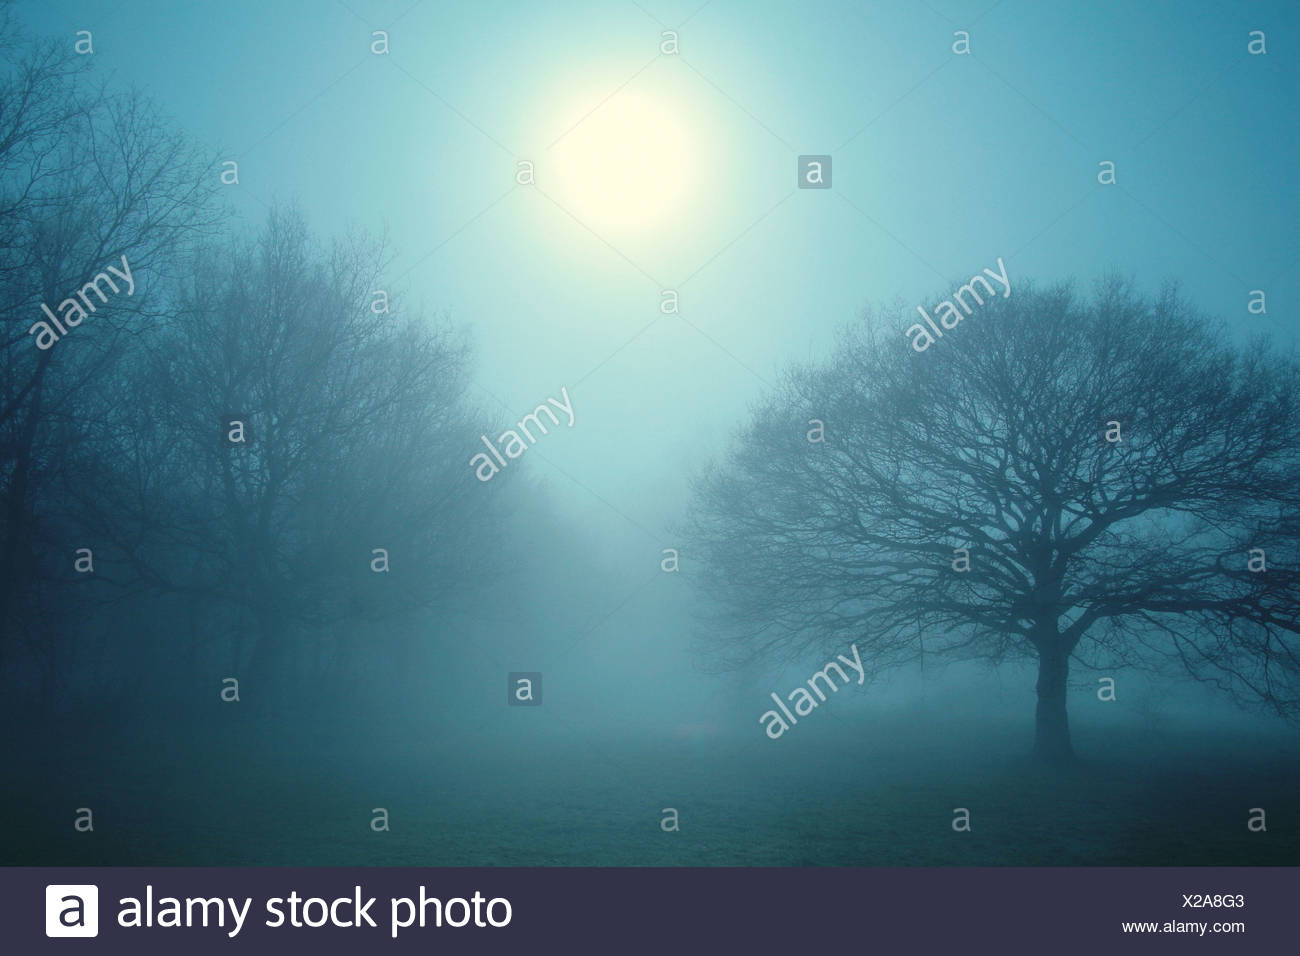 trees in the mist - Stock Image